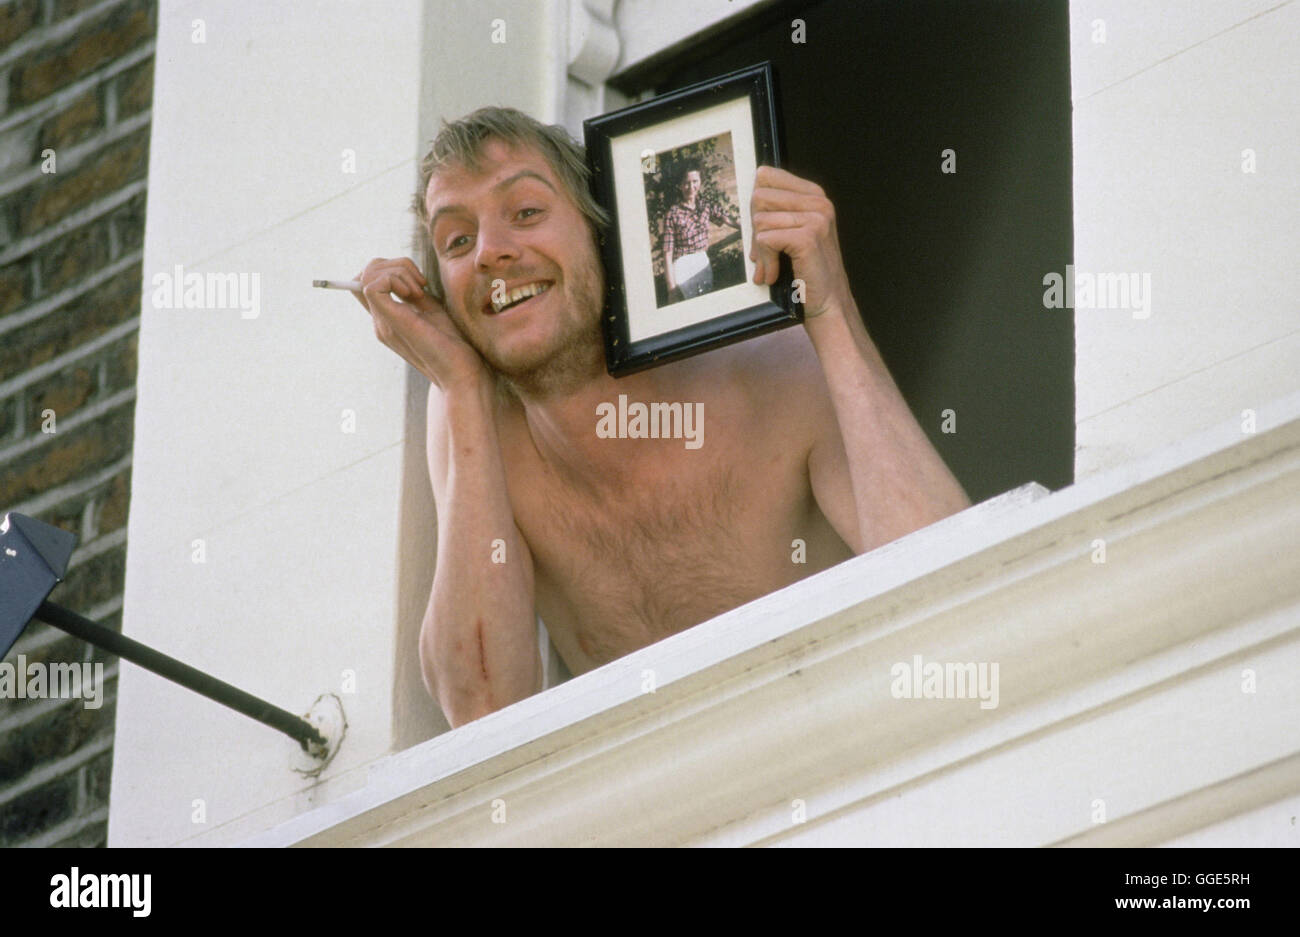 NOTTING HILL / Notting Hill England 1999 / Roger Michell RHYS IFANS als Spike, in der Film-Romanze 'Notting - Stock Image